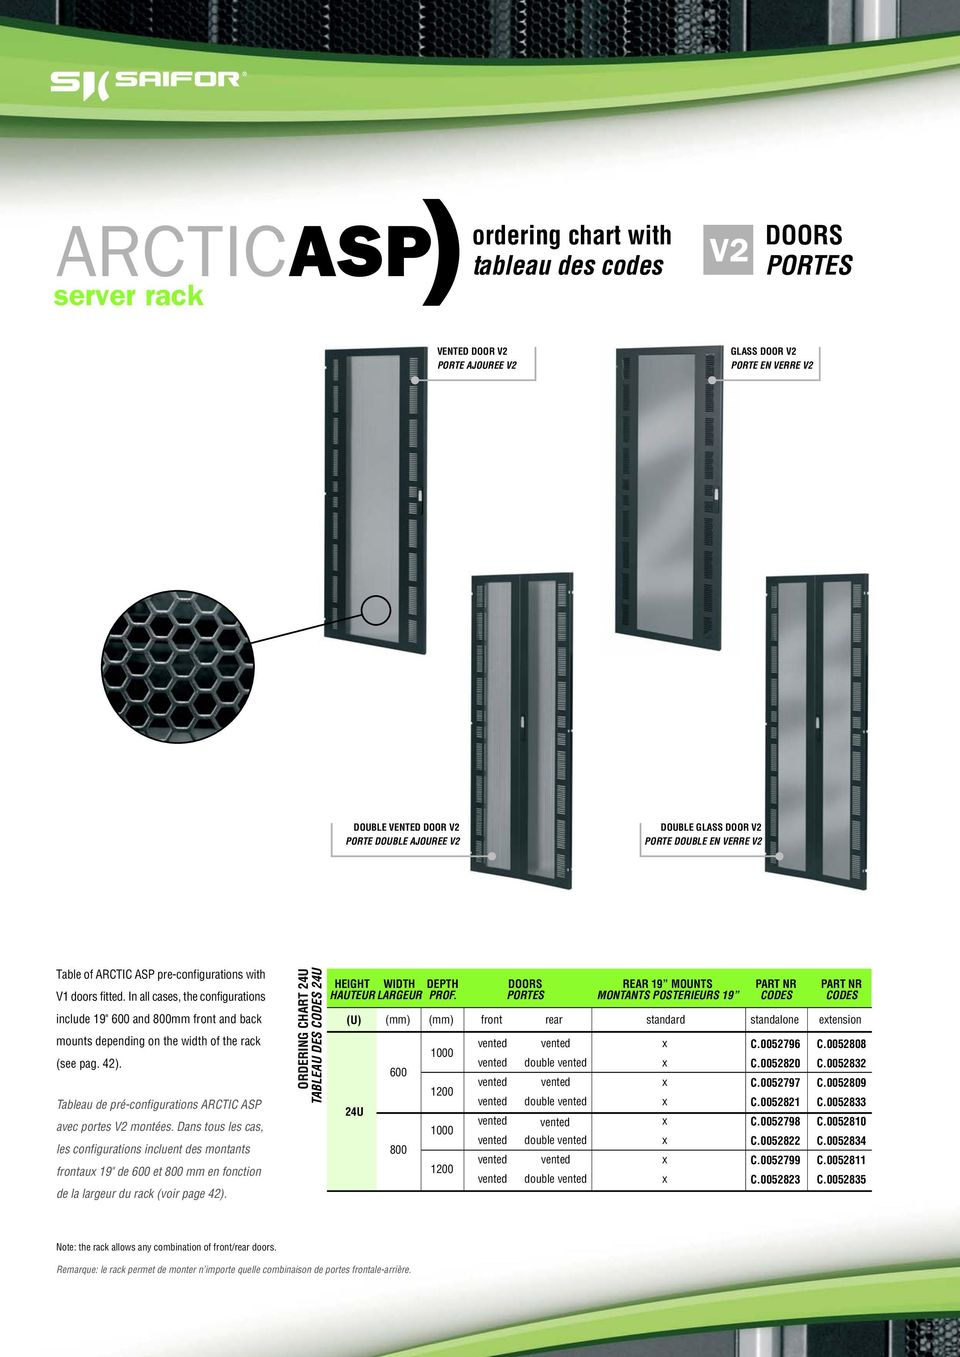 "In all cases, the configurations include 19"" and mm front and back mounts depending on the width of the rack (see pag. 42). Tableau de pré-configurations ARCTIC ASP avec portes V2 montées."